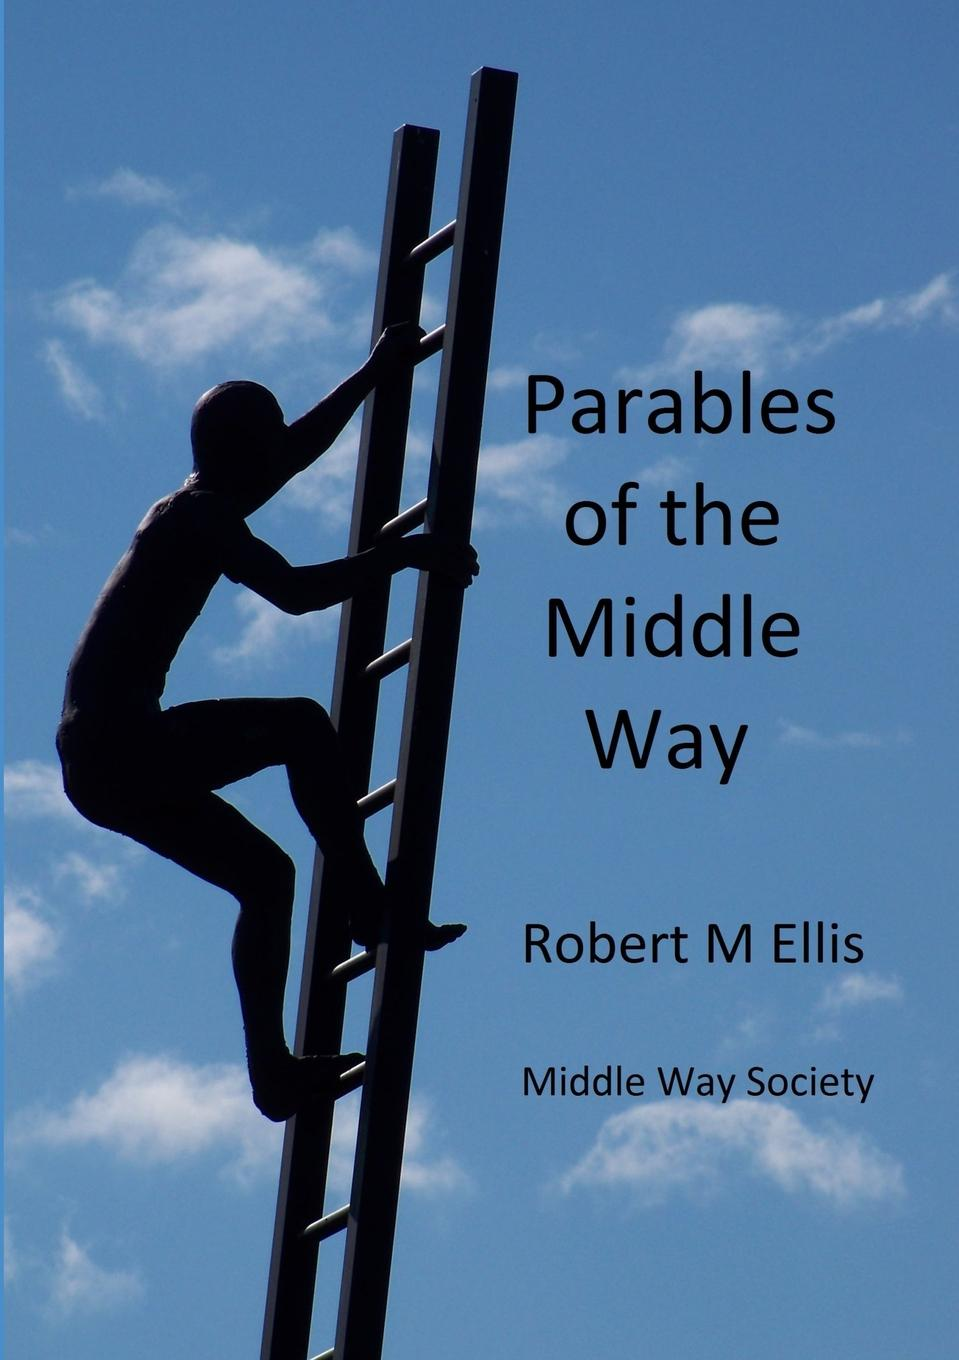 Robert M. Ellis Parables of the Middle Way cabot m princess in the middle